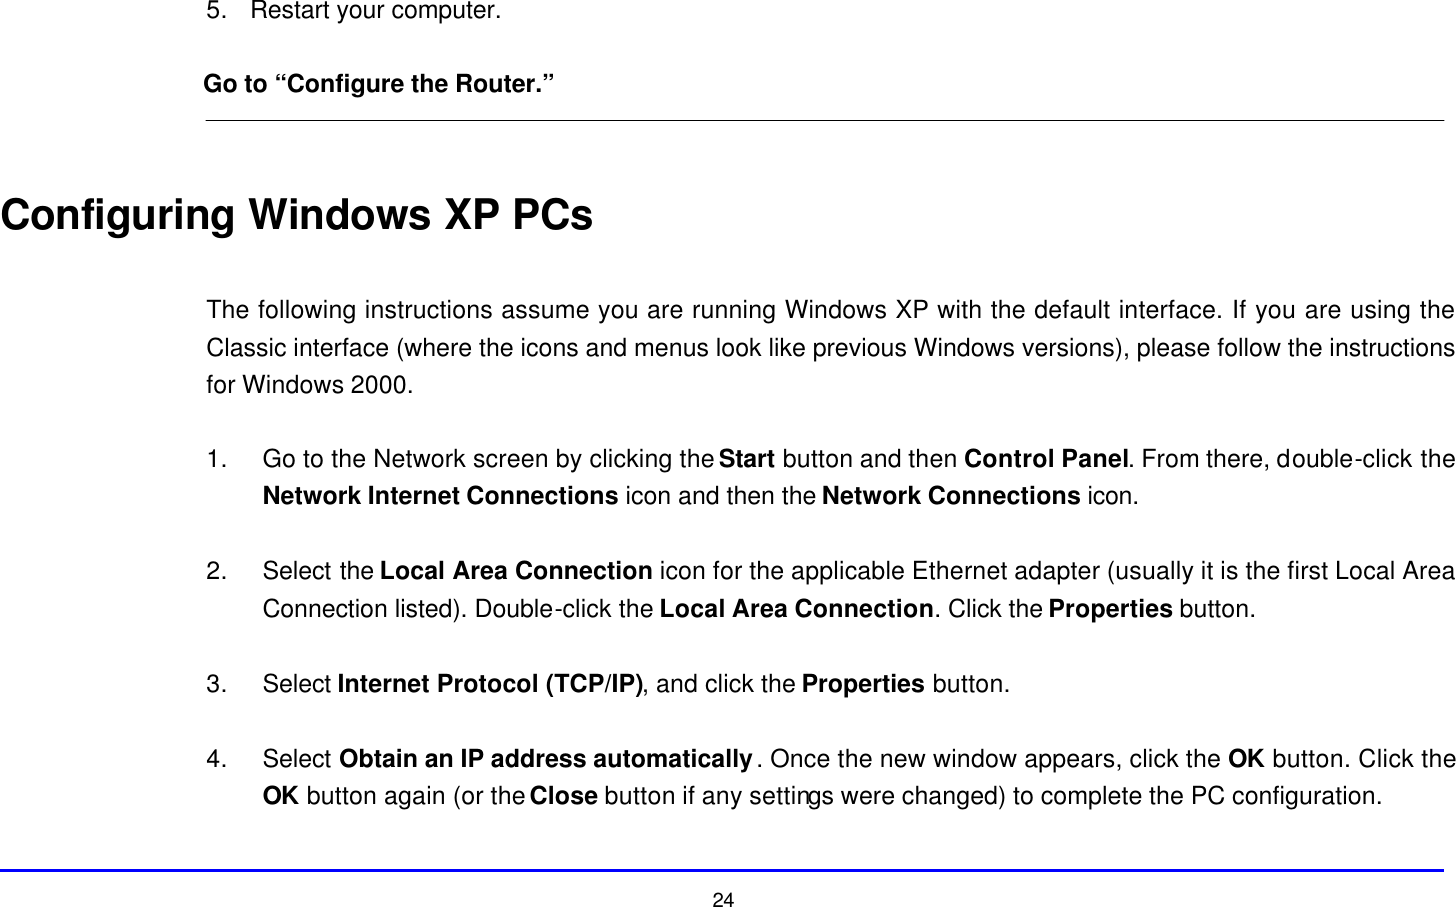 """24 5. Restart your computer.  Go to """"Configure the Router.""""   Configuring Windows XP PCs  The following instructions assume you are running Windows XP with the default interface. If you are using the Classic interface (where the icons and menus look like previous Windows versions), please follow the instructions for Windows 2000.  1. Go to the Network screen by clicking the Start button and then Control Panel. From there, double-click the Network Internet Connections icon and then the Network Connections icon.  2. Select the Local Area Connection icon for the applicable Ethernet adapter (usually it is the first Local Area Connection listed). Double-click the Local Area Connection. Click the Properties button.  3. Select Internet Protocol (TCP/IP), and click the Properties button.  4. Select Obtain an IP address automatically. Once the new window appears, click the OK button. Click the OK button again (or the Close button if any settings were changed) to complete the PC configuration."""